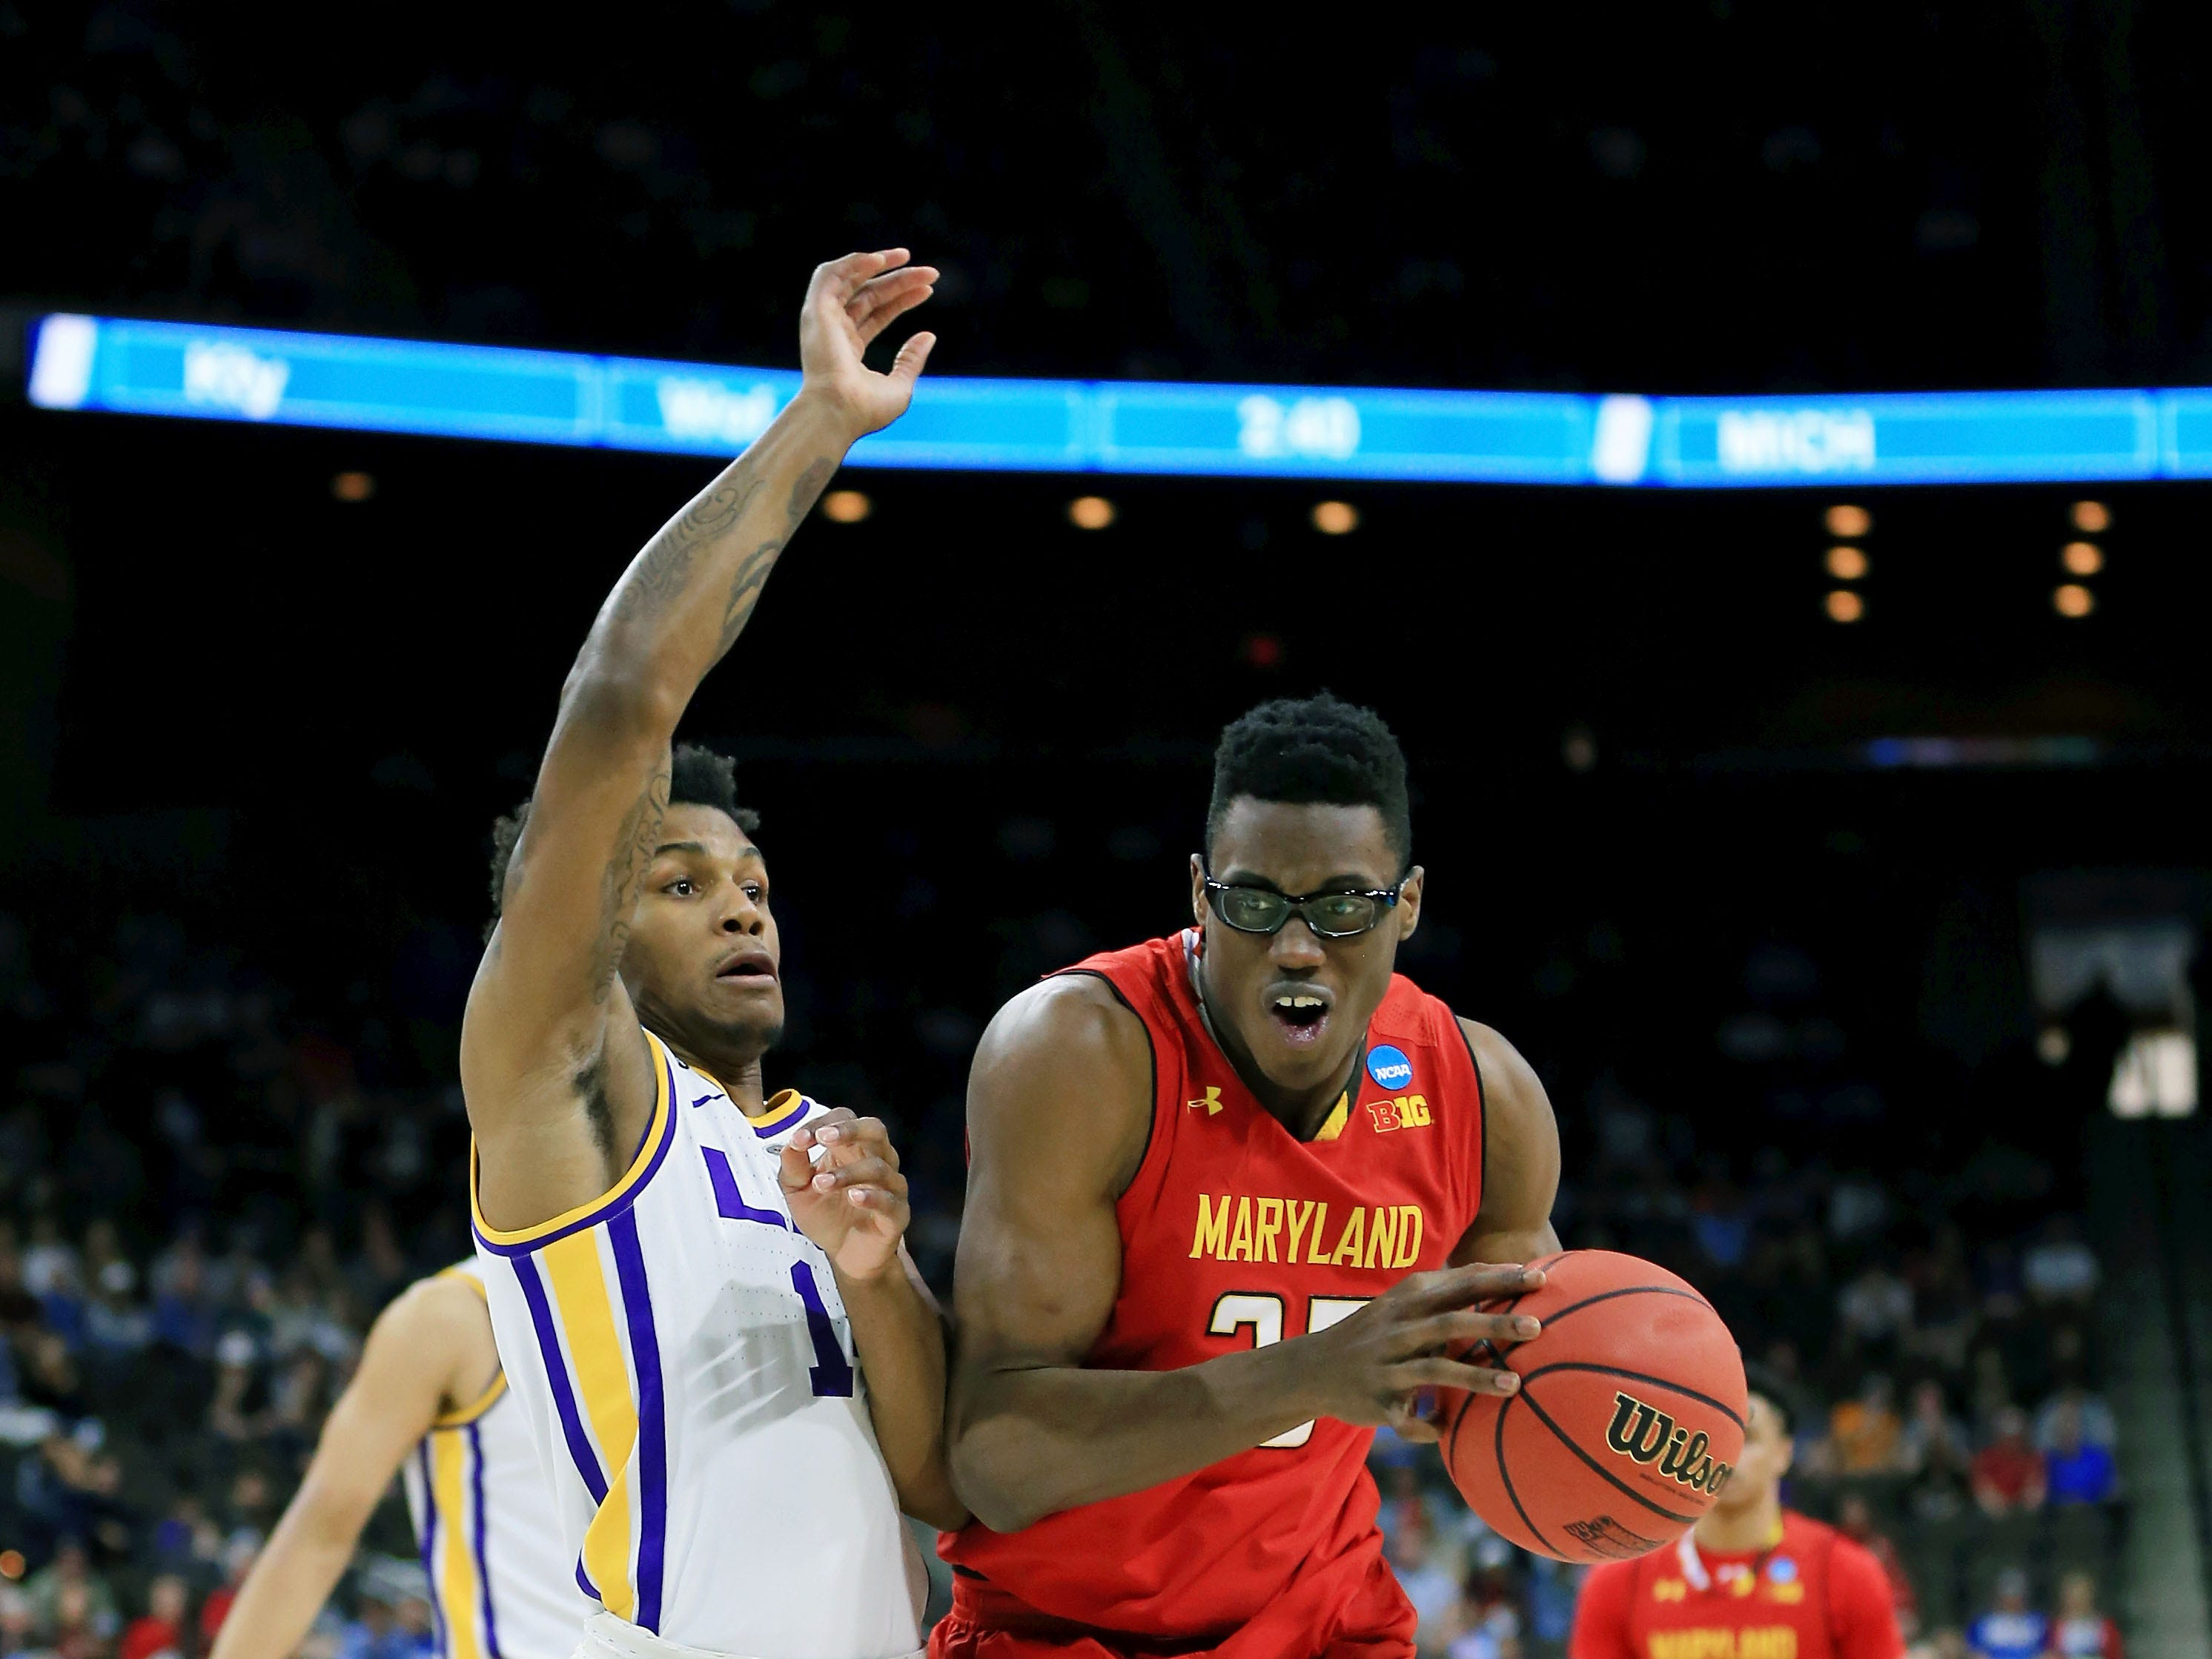 Mar 23, 2019; Jacksonville, FL, USA; Maryland Terrapins forward Jalen Smith (25) dribbles around LSU Tigers guard Javonte Smart (1) during the first half in the second round of the 2019 NCAA Tournament at Jacksonville Veterans Memorial Arena. Mandatory Credit: Matt Stamey-USA TODAY Sports